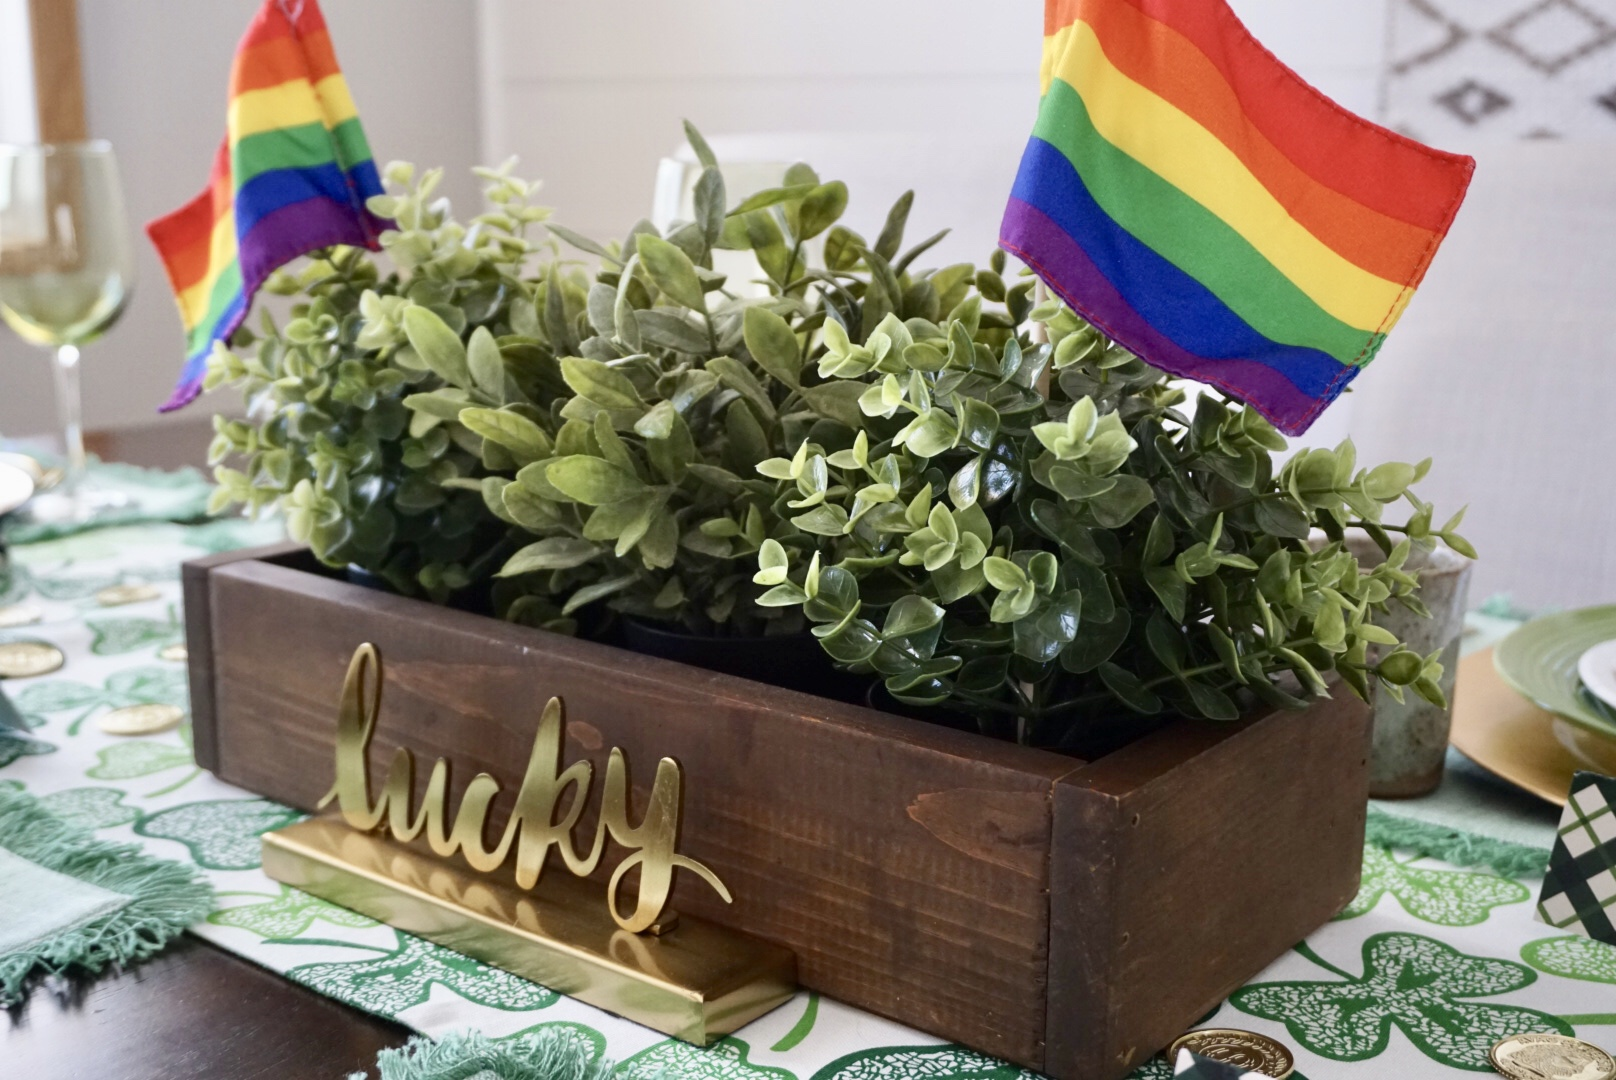 Lucky St. Patrick's Day Centerpiece with greenery, rainbow flags, and gold signage.